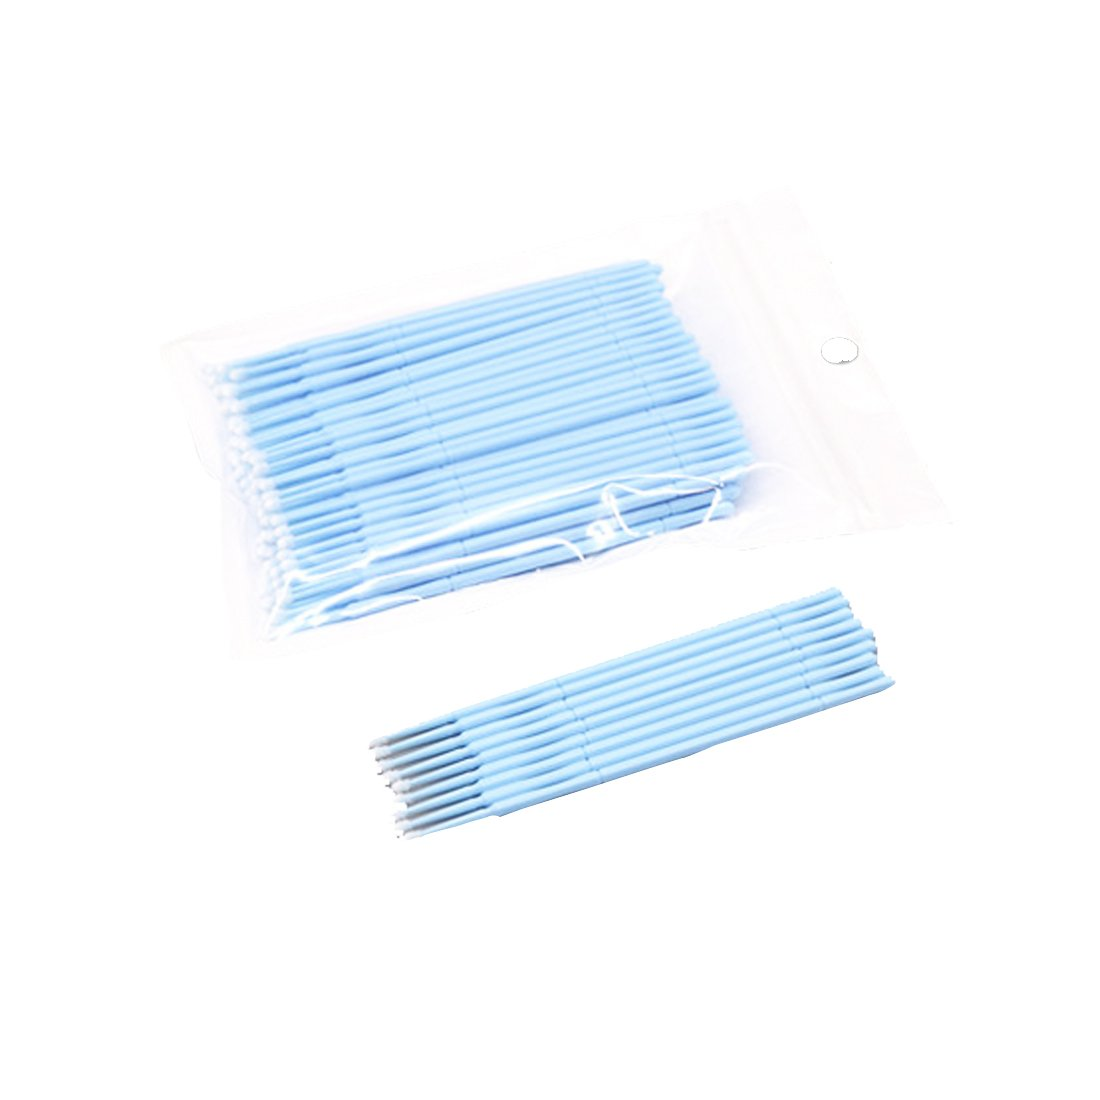 Lint Free Disposable Eyelash Extension Applicators Micro Individual Makeup Brush Durable Mascara Removing Swab 100pcs/pack iHen-Tech